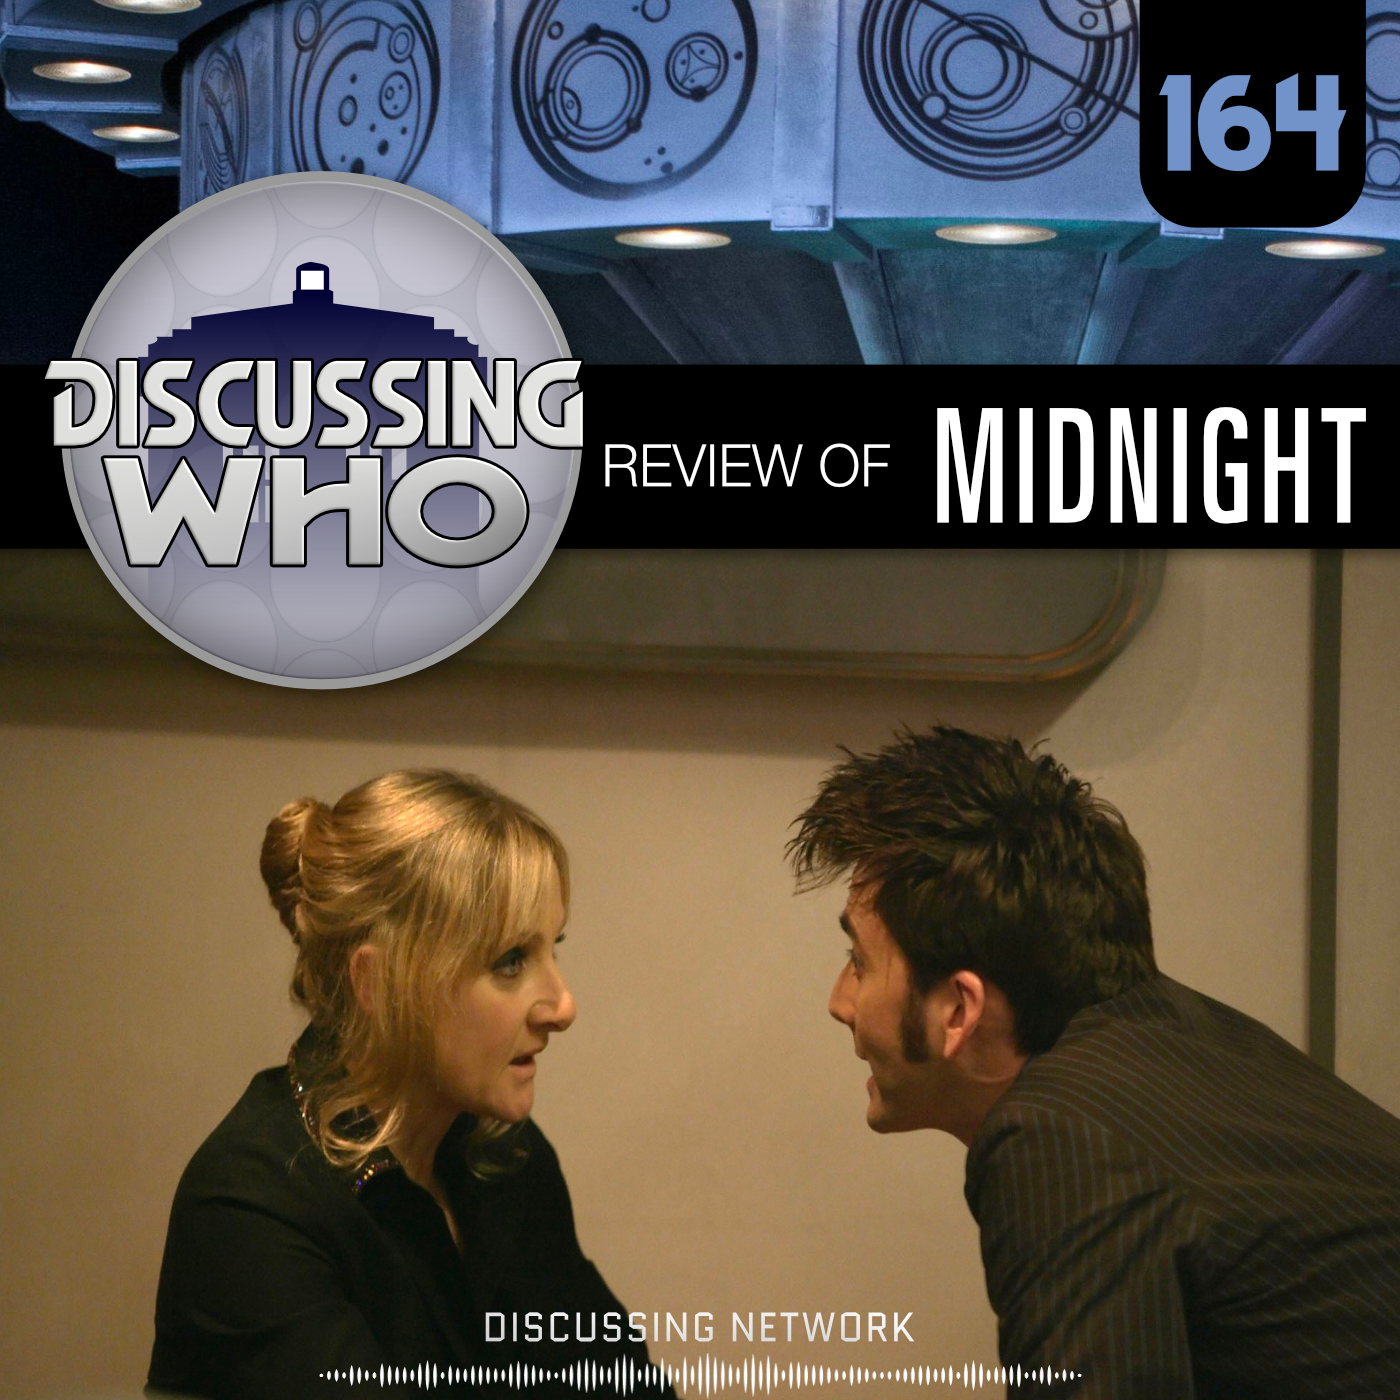 Episode 164: Review of Midnight, Doctor Who Series 4 Episode